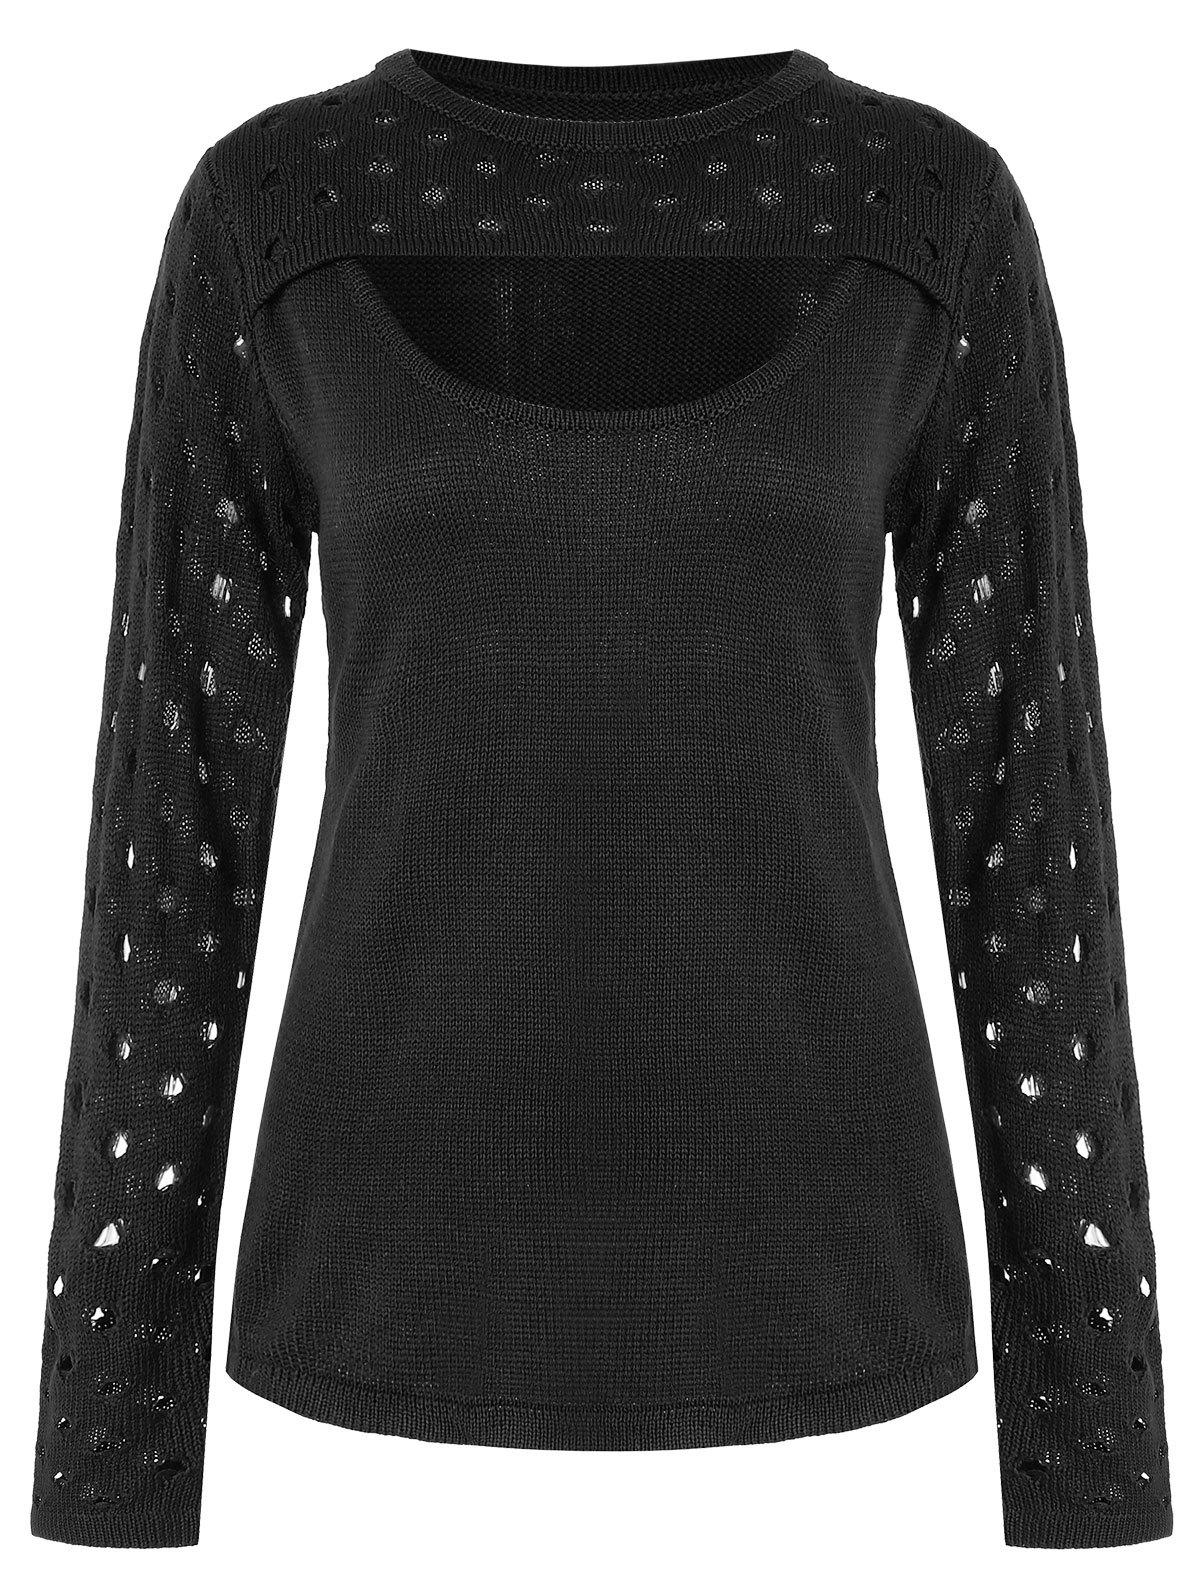 Holes Detail Keyhole Cut Front Sweater - BLACK S